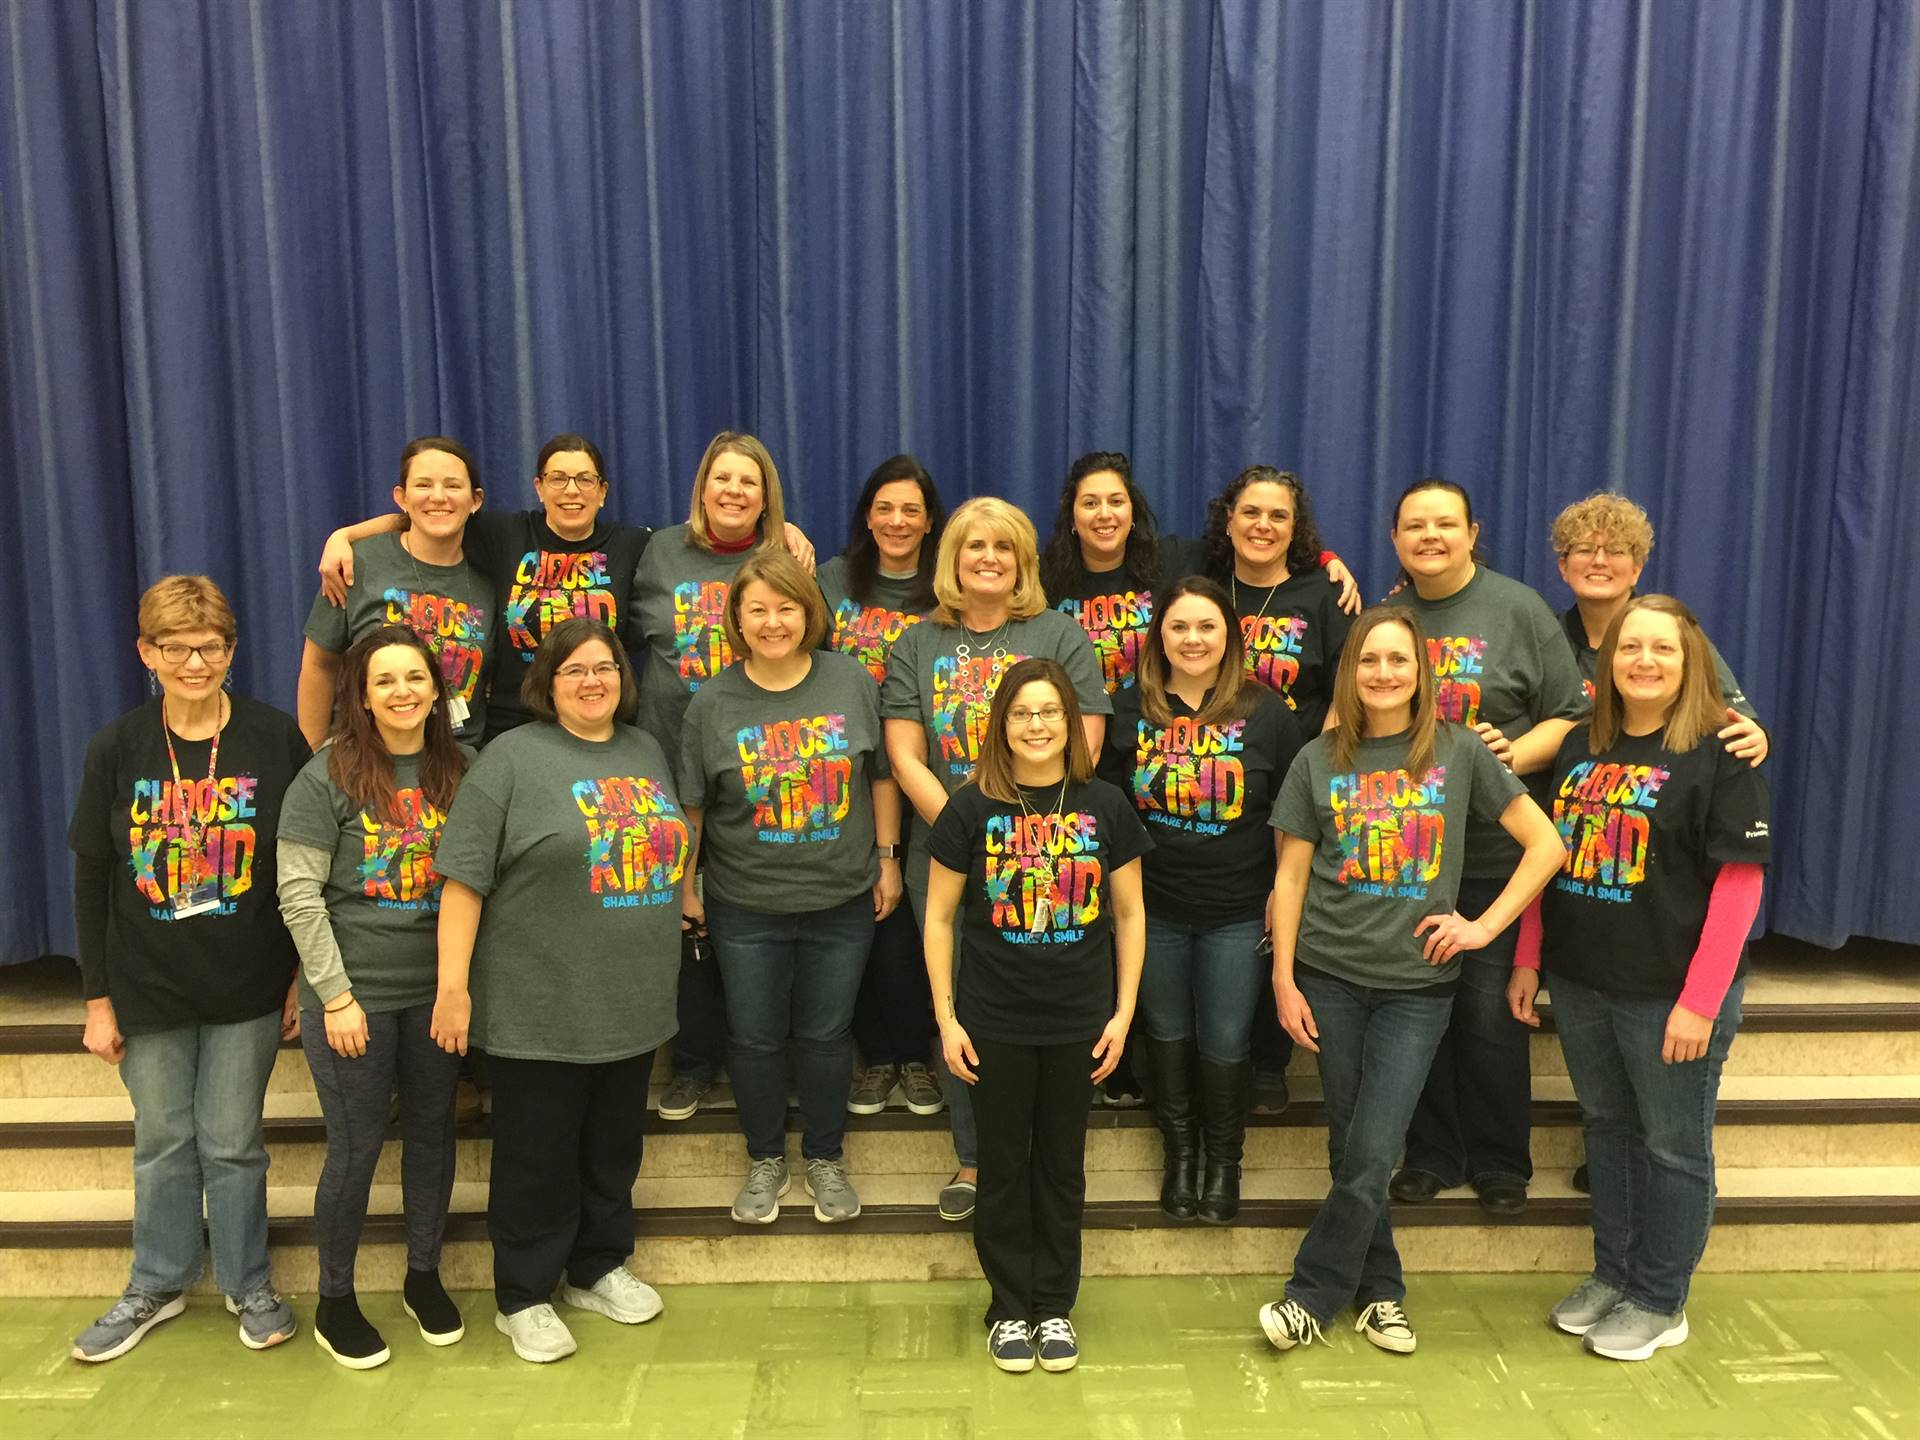 Marzolf staff wearing Choose Kind t-shirts